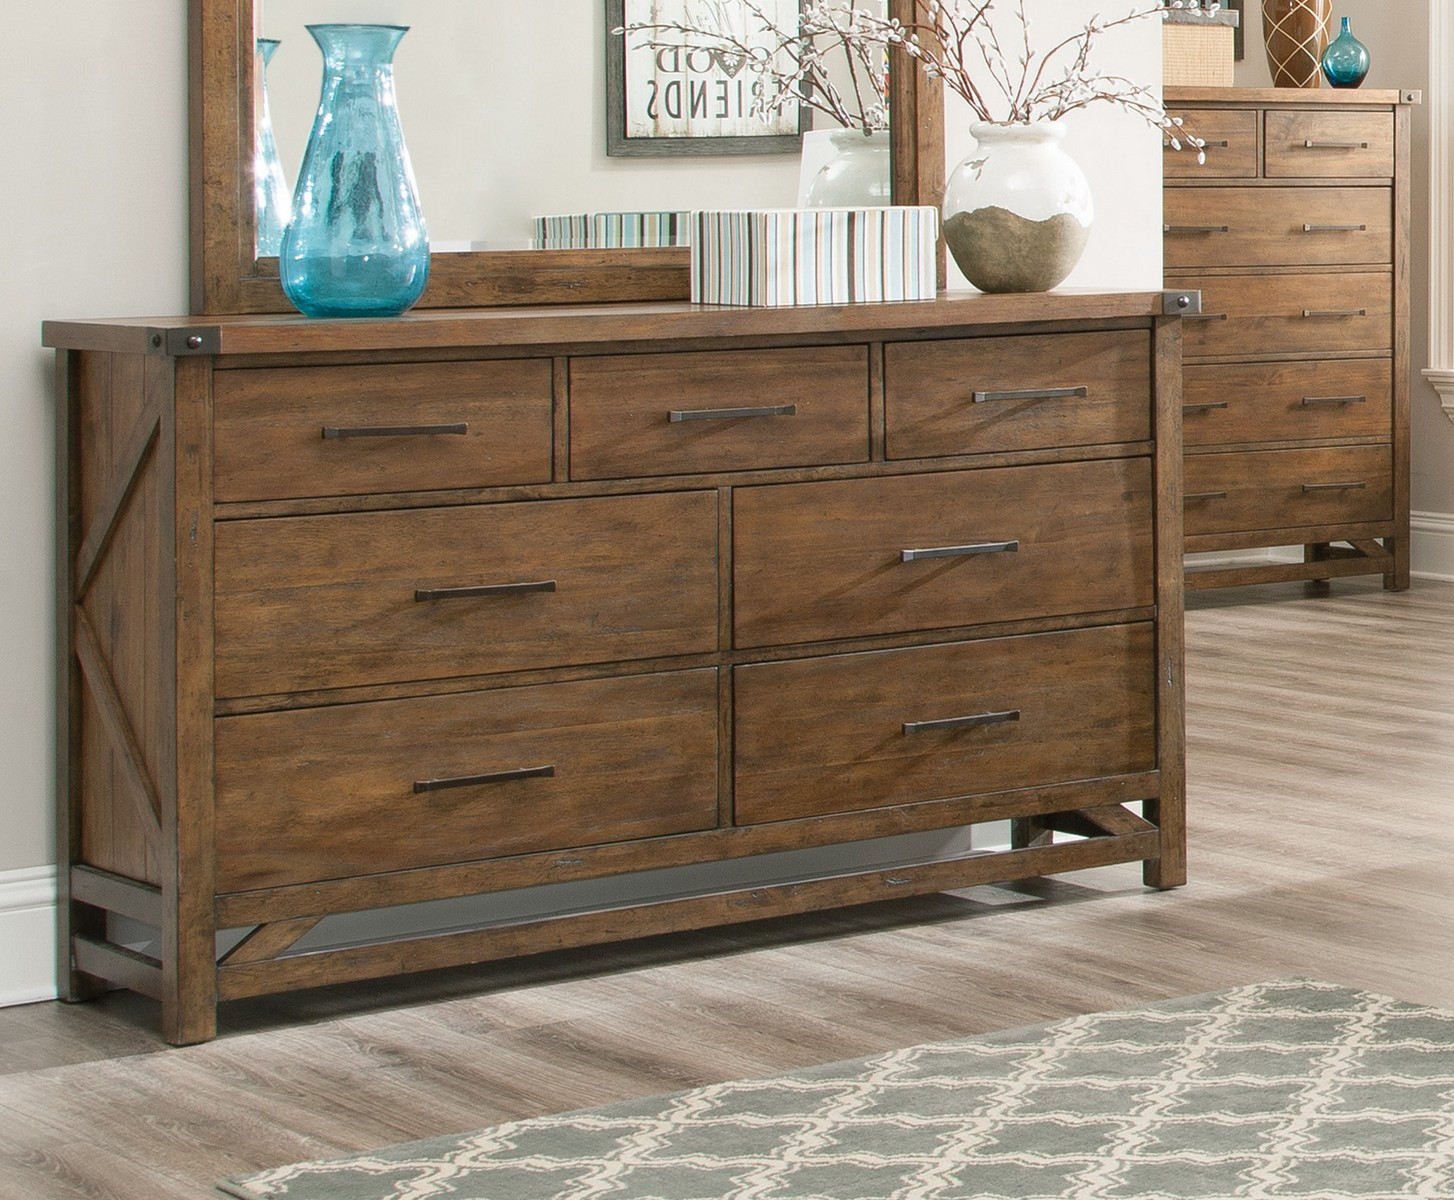 Coaster Bridgeport Dresser - Weathered Acacia